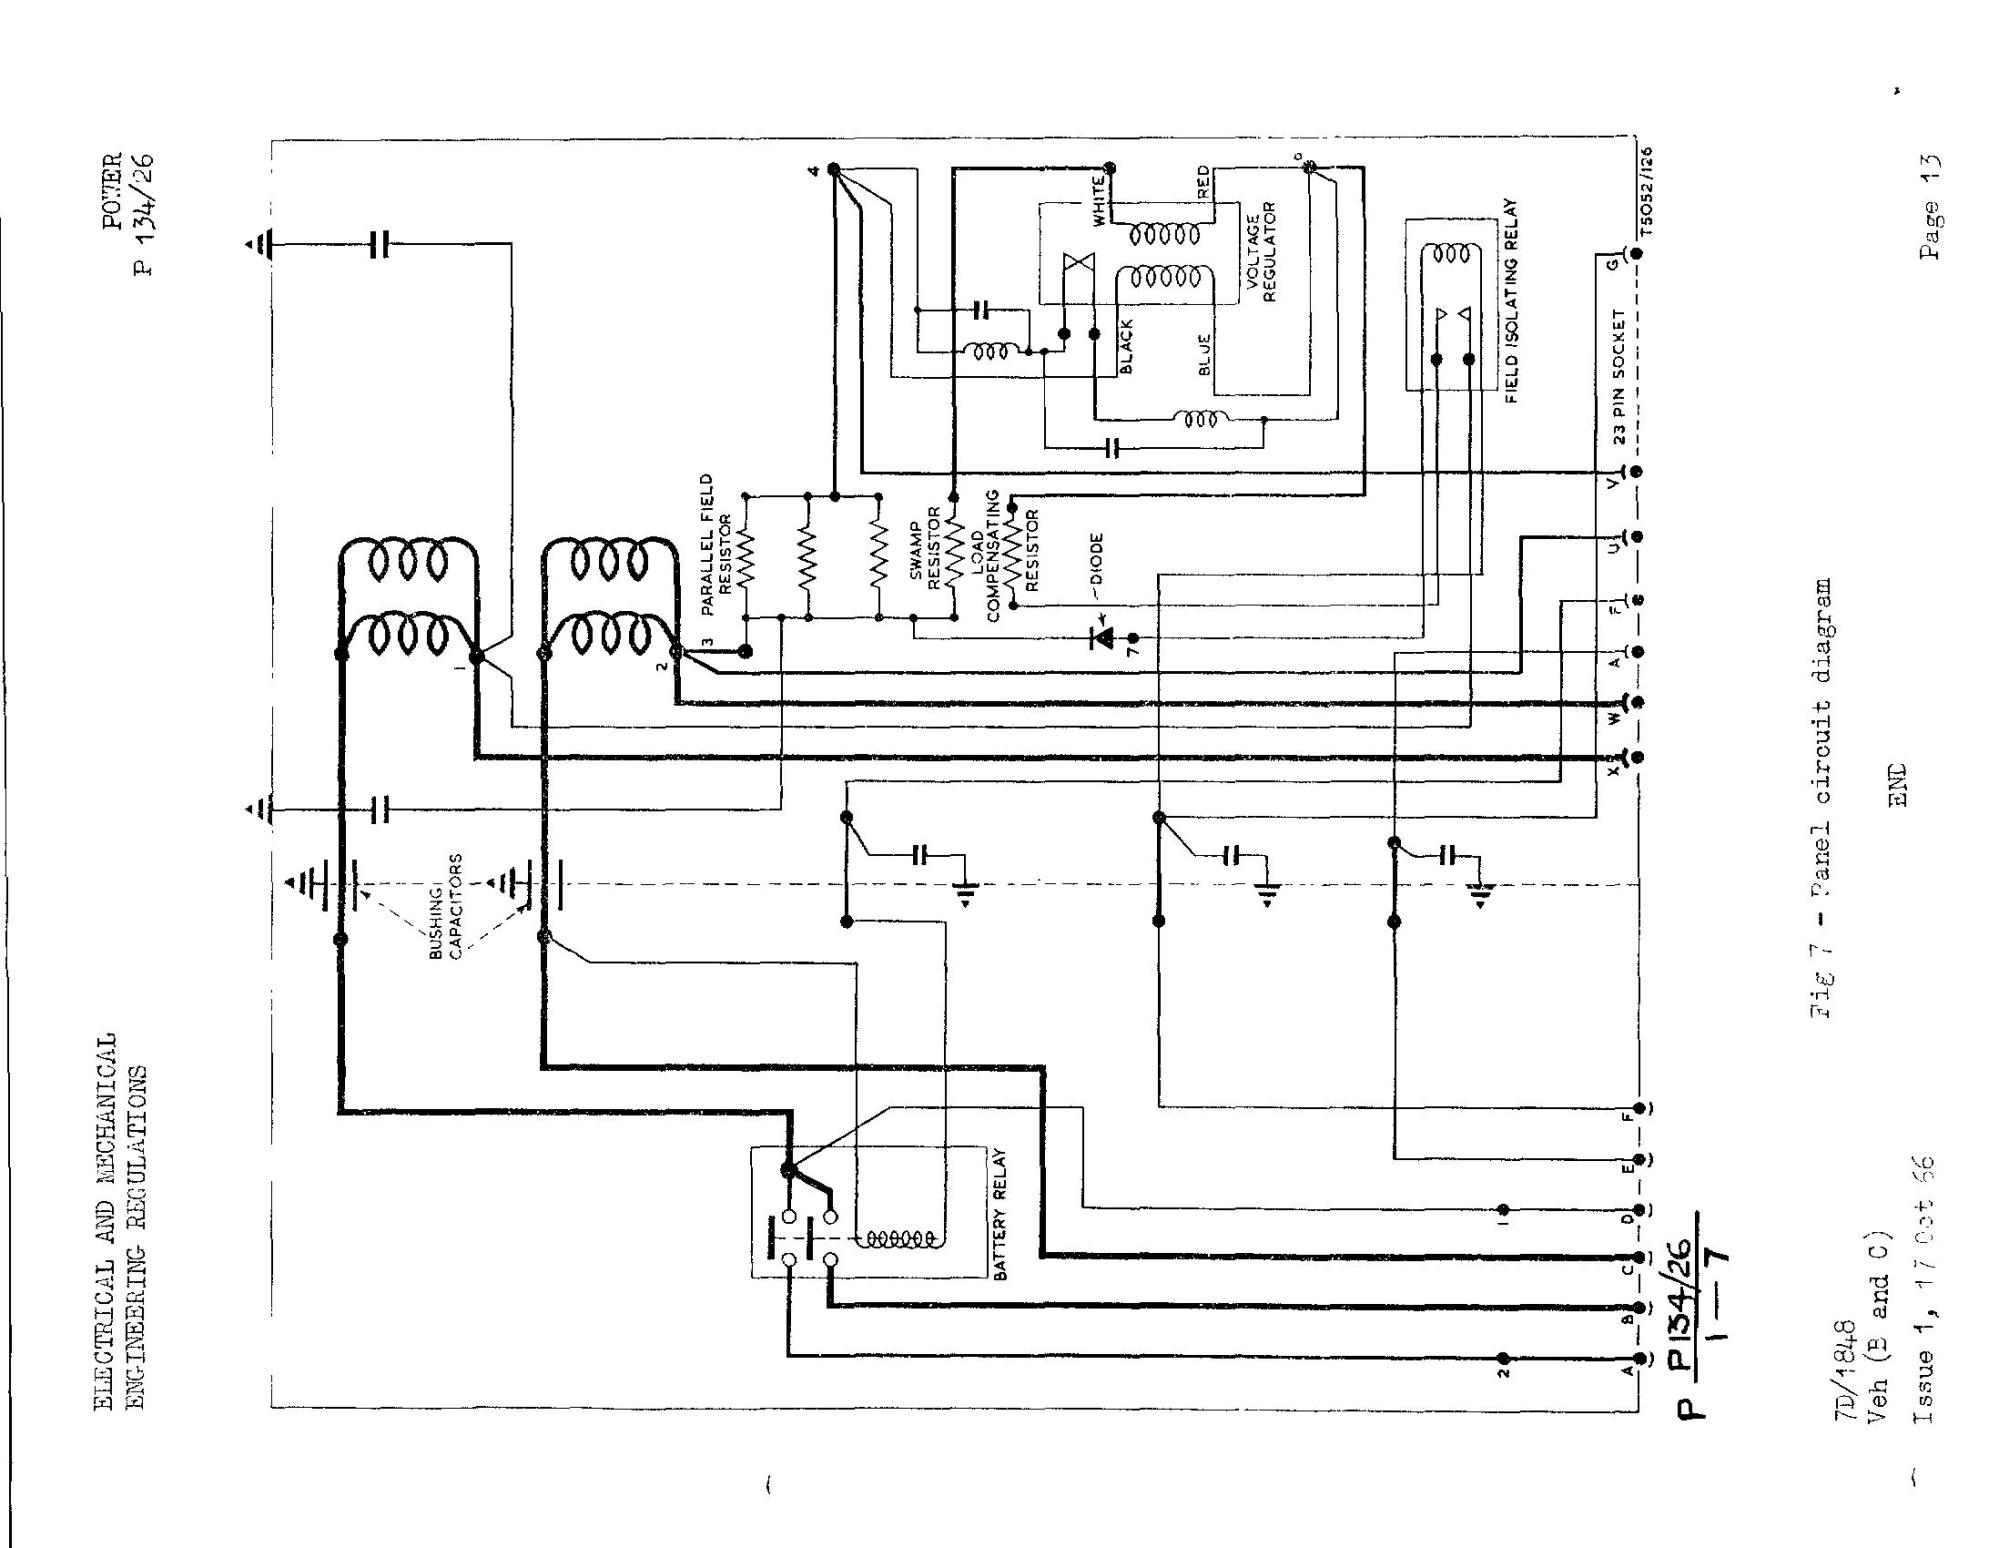 hight resolution of generator onan wiring circuit diagram get free image wiring diagram onan 4 0 generator wiring diagram for onan 4000 generator